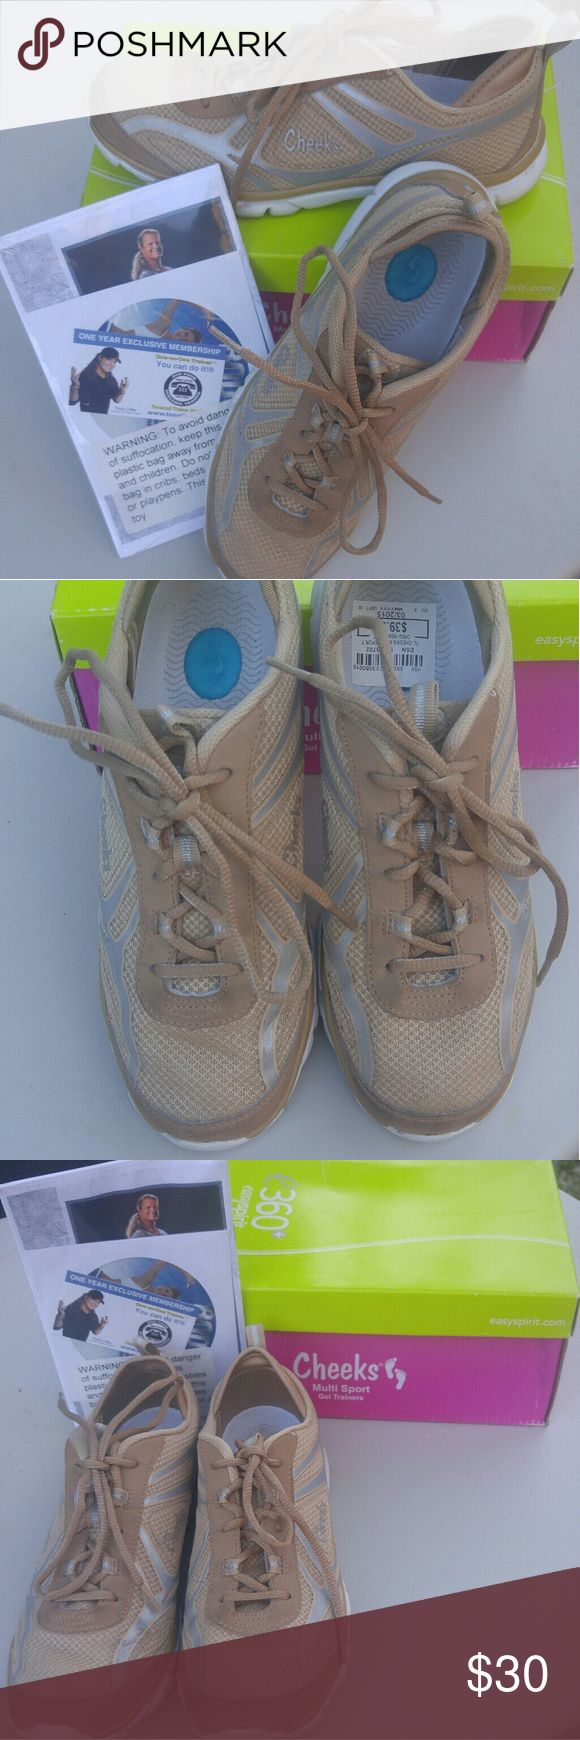 TL CHEEKS MULTI-SPORT HSN CARRIED by the Home Shopping Network these multi-sport shakes come with a free workout CD. They are made for aerobics running walking and many different various Sports. They had the soft gel insoles for comfort built in. Women's size 8 medium they were used as a display so they were tried on by several people this is the only wear that you have no damage and perfect condition. Cheeks Shoes Sneakers